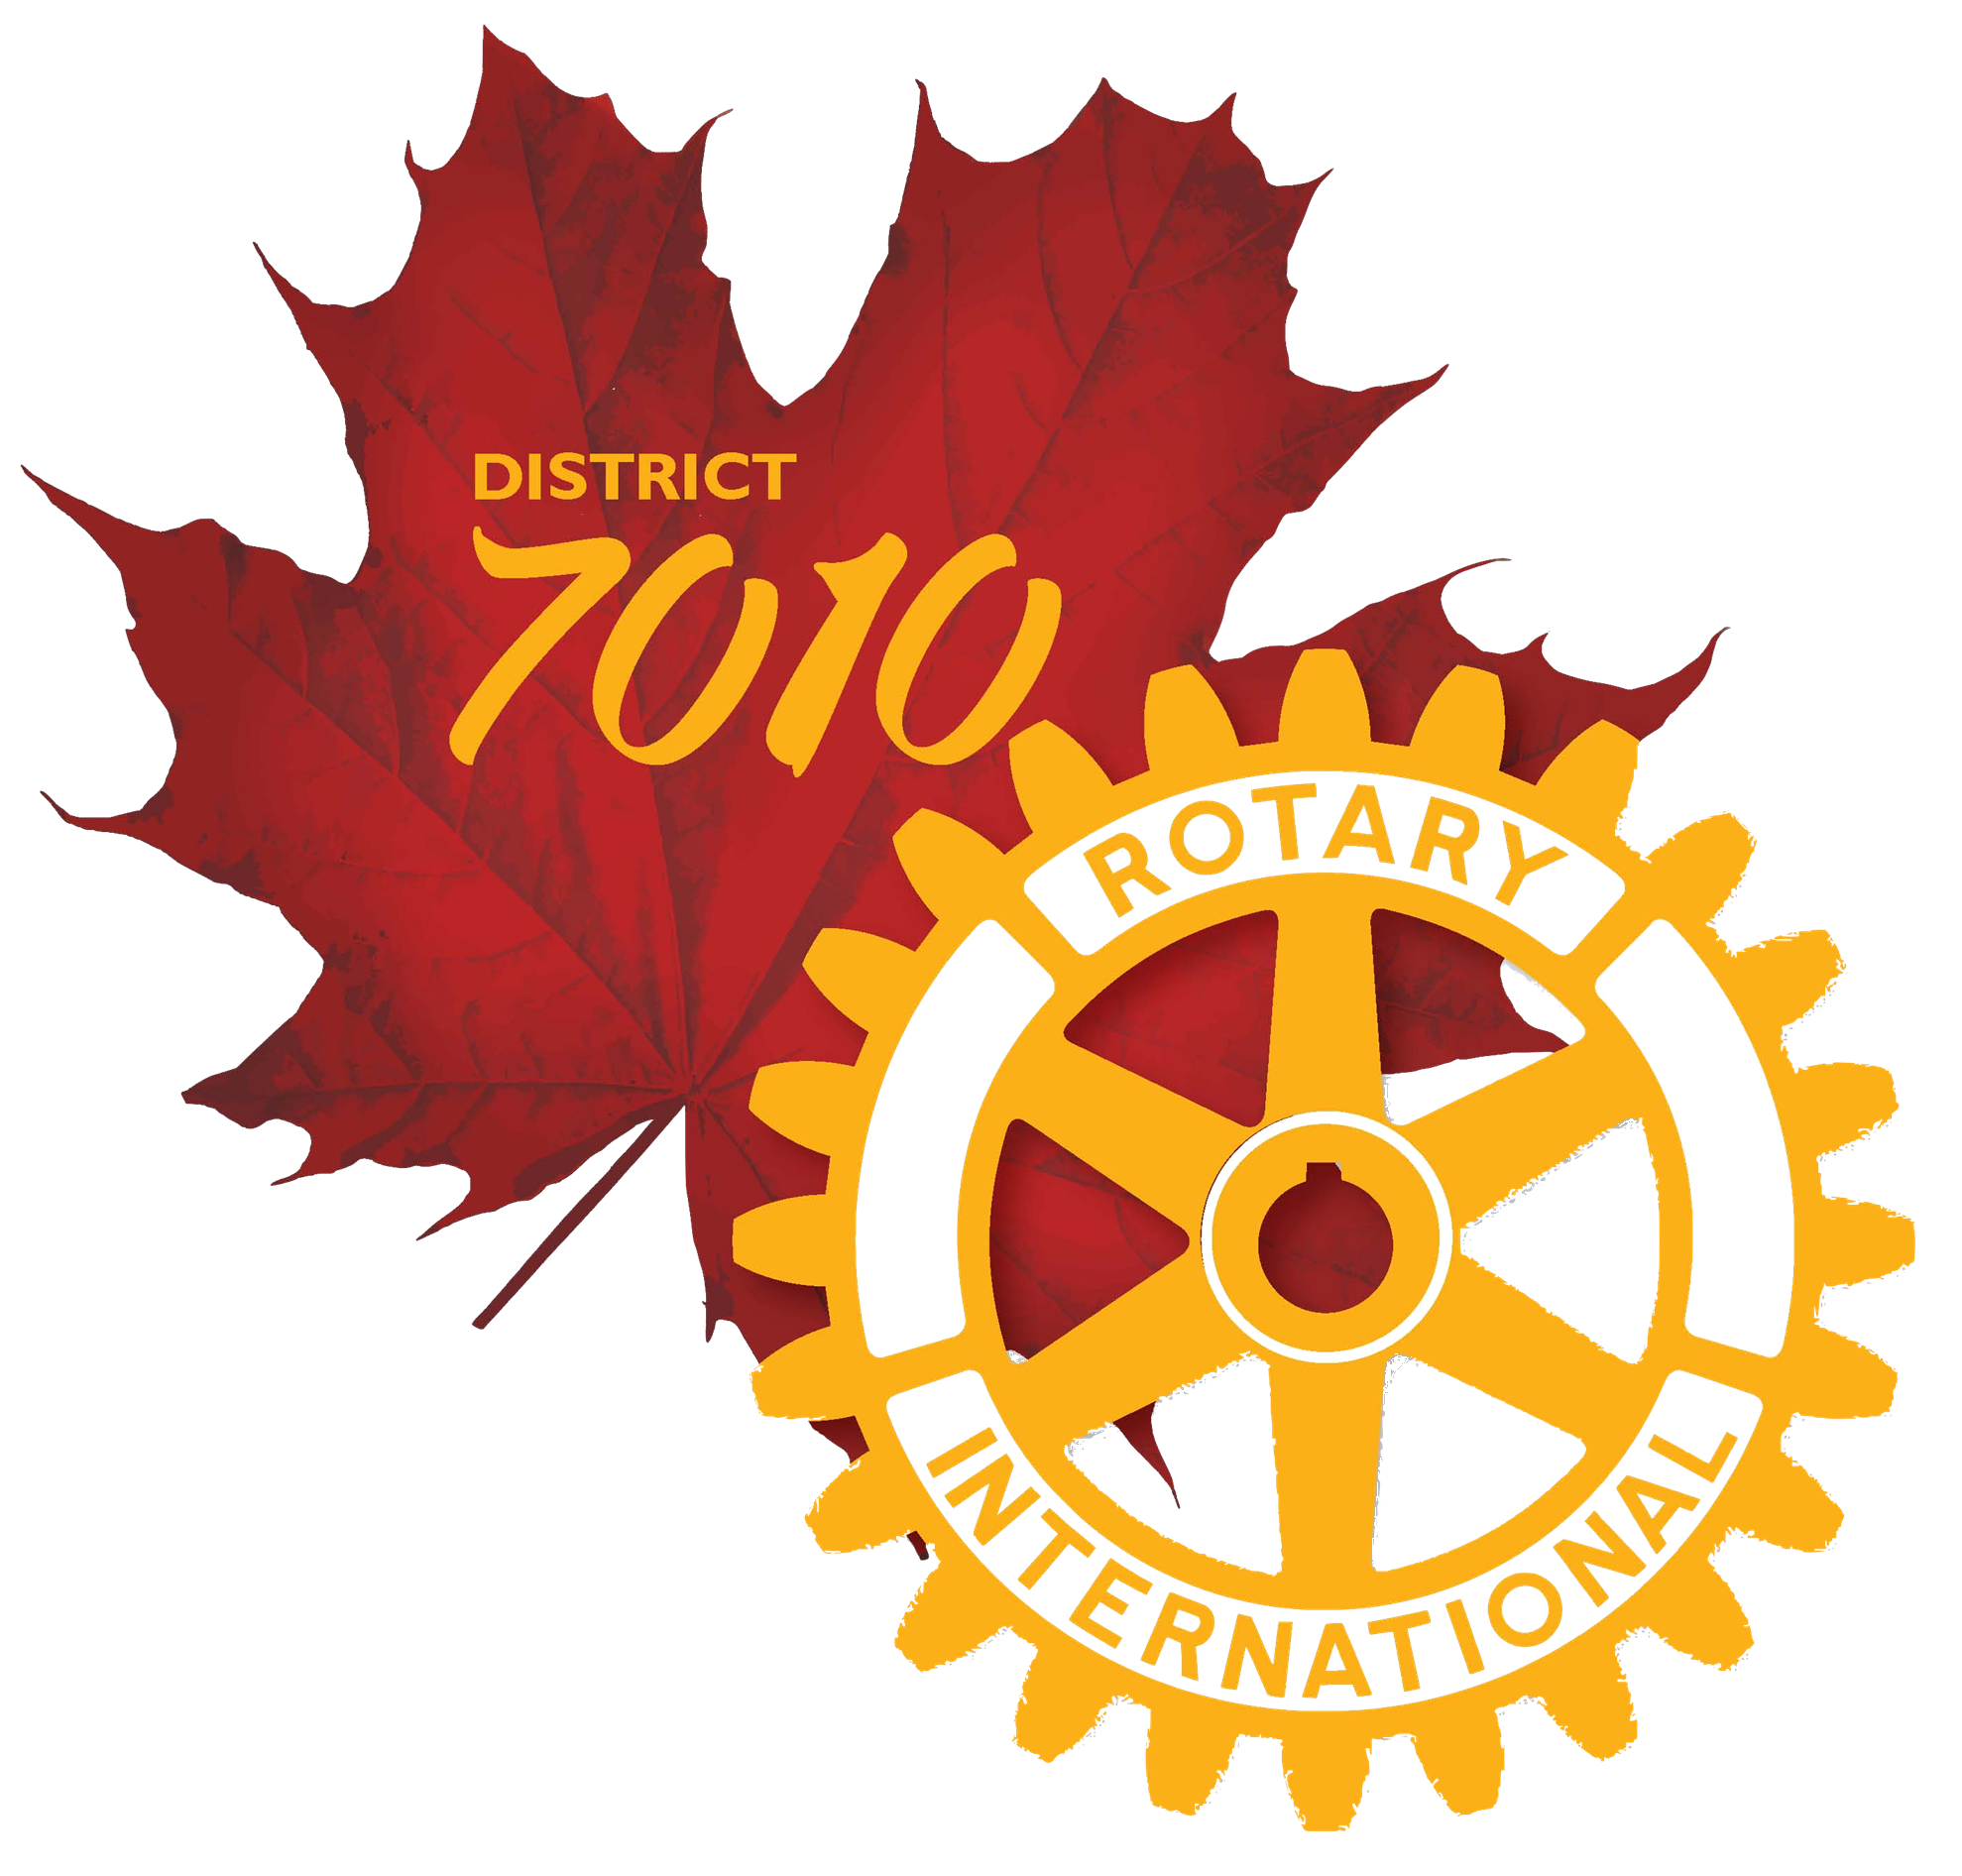 District 7010 logo